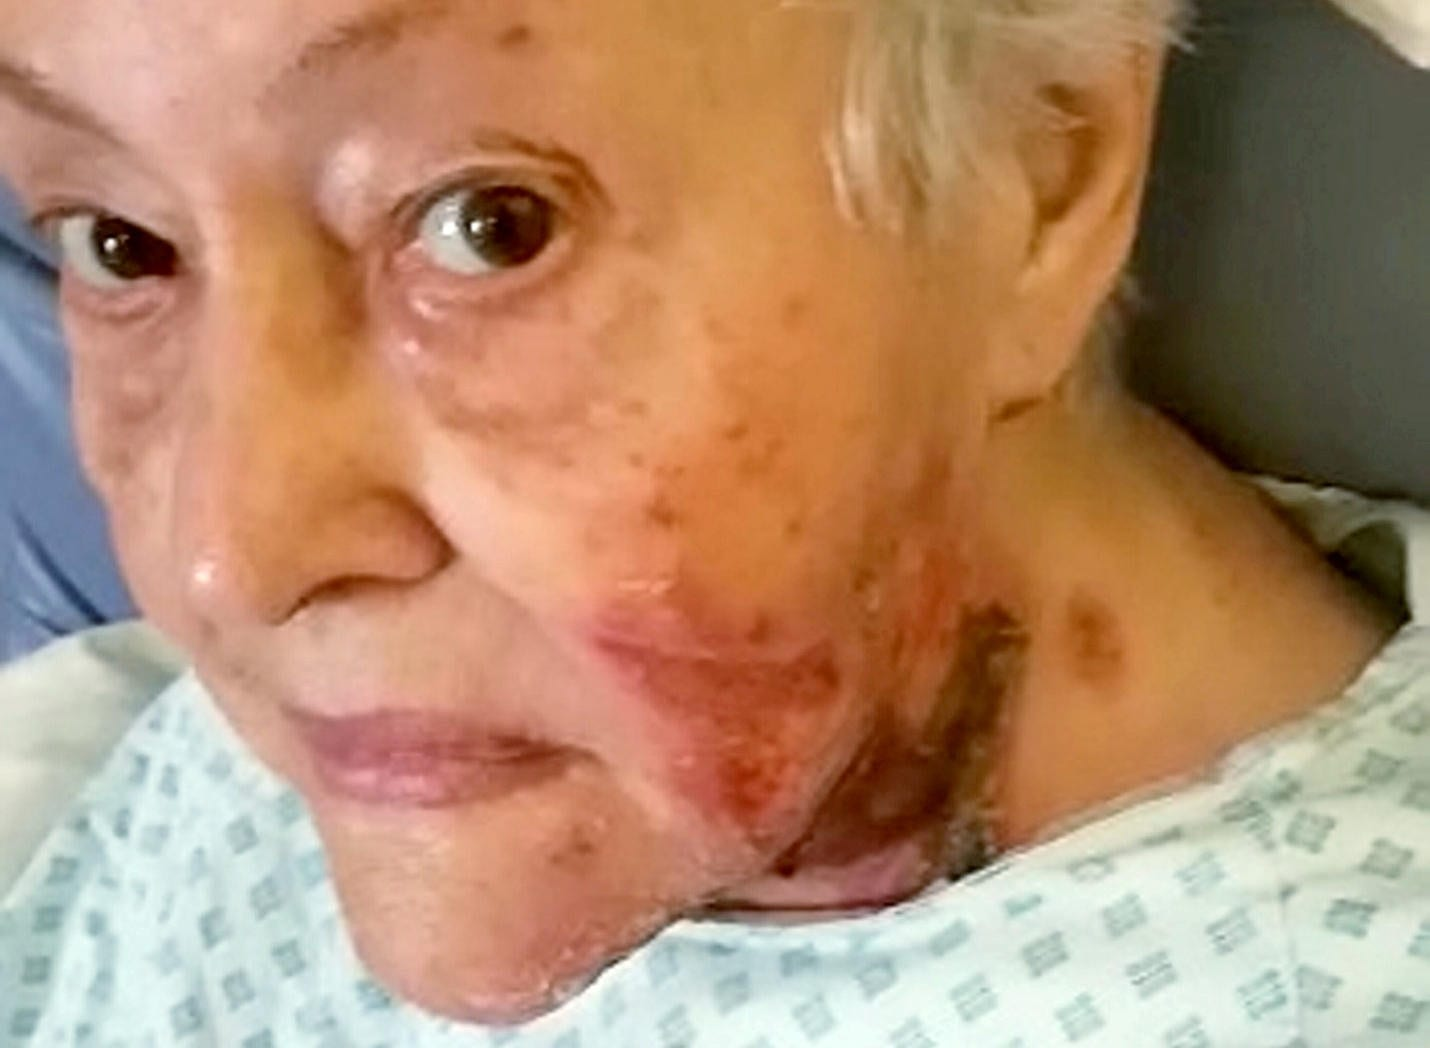 80-Year-Old Burned After Cigarette Tip Fell And Ignited Her Clothing - Amid Claims Negligent Carers Are To Blame